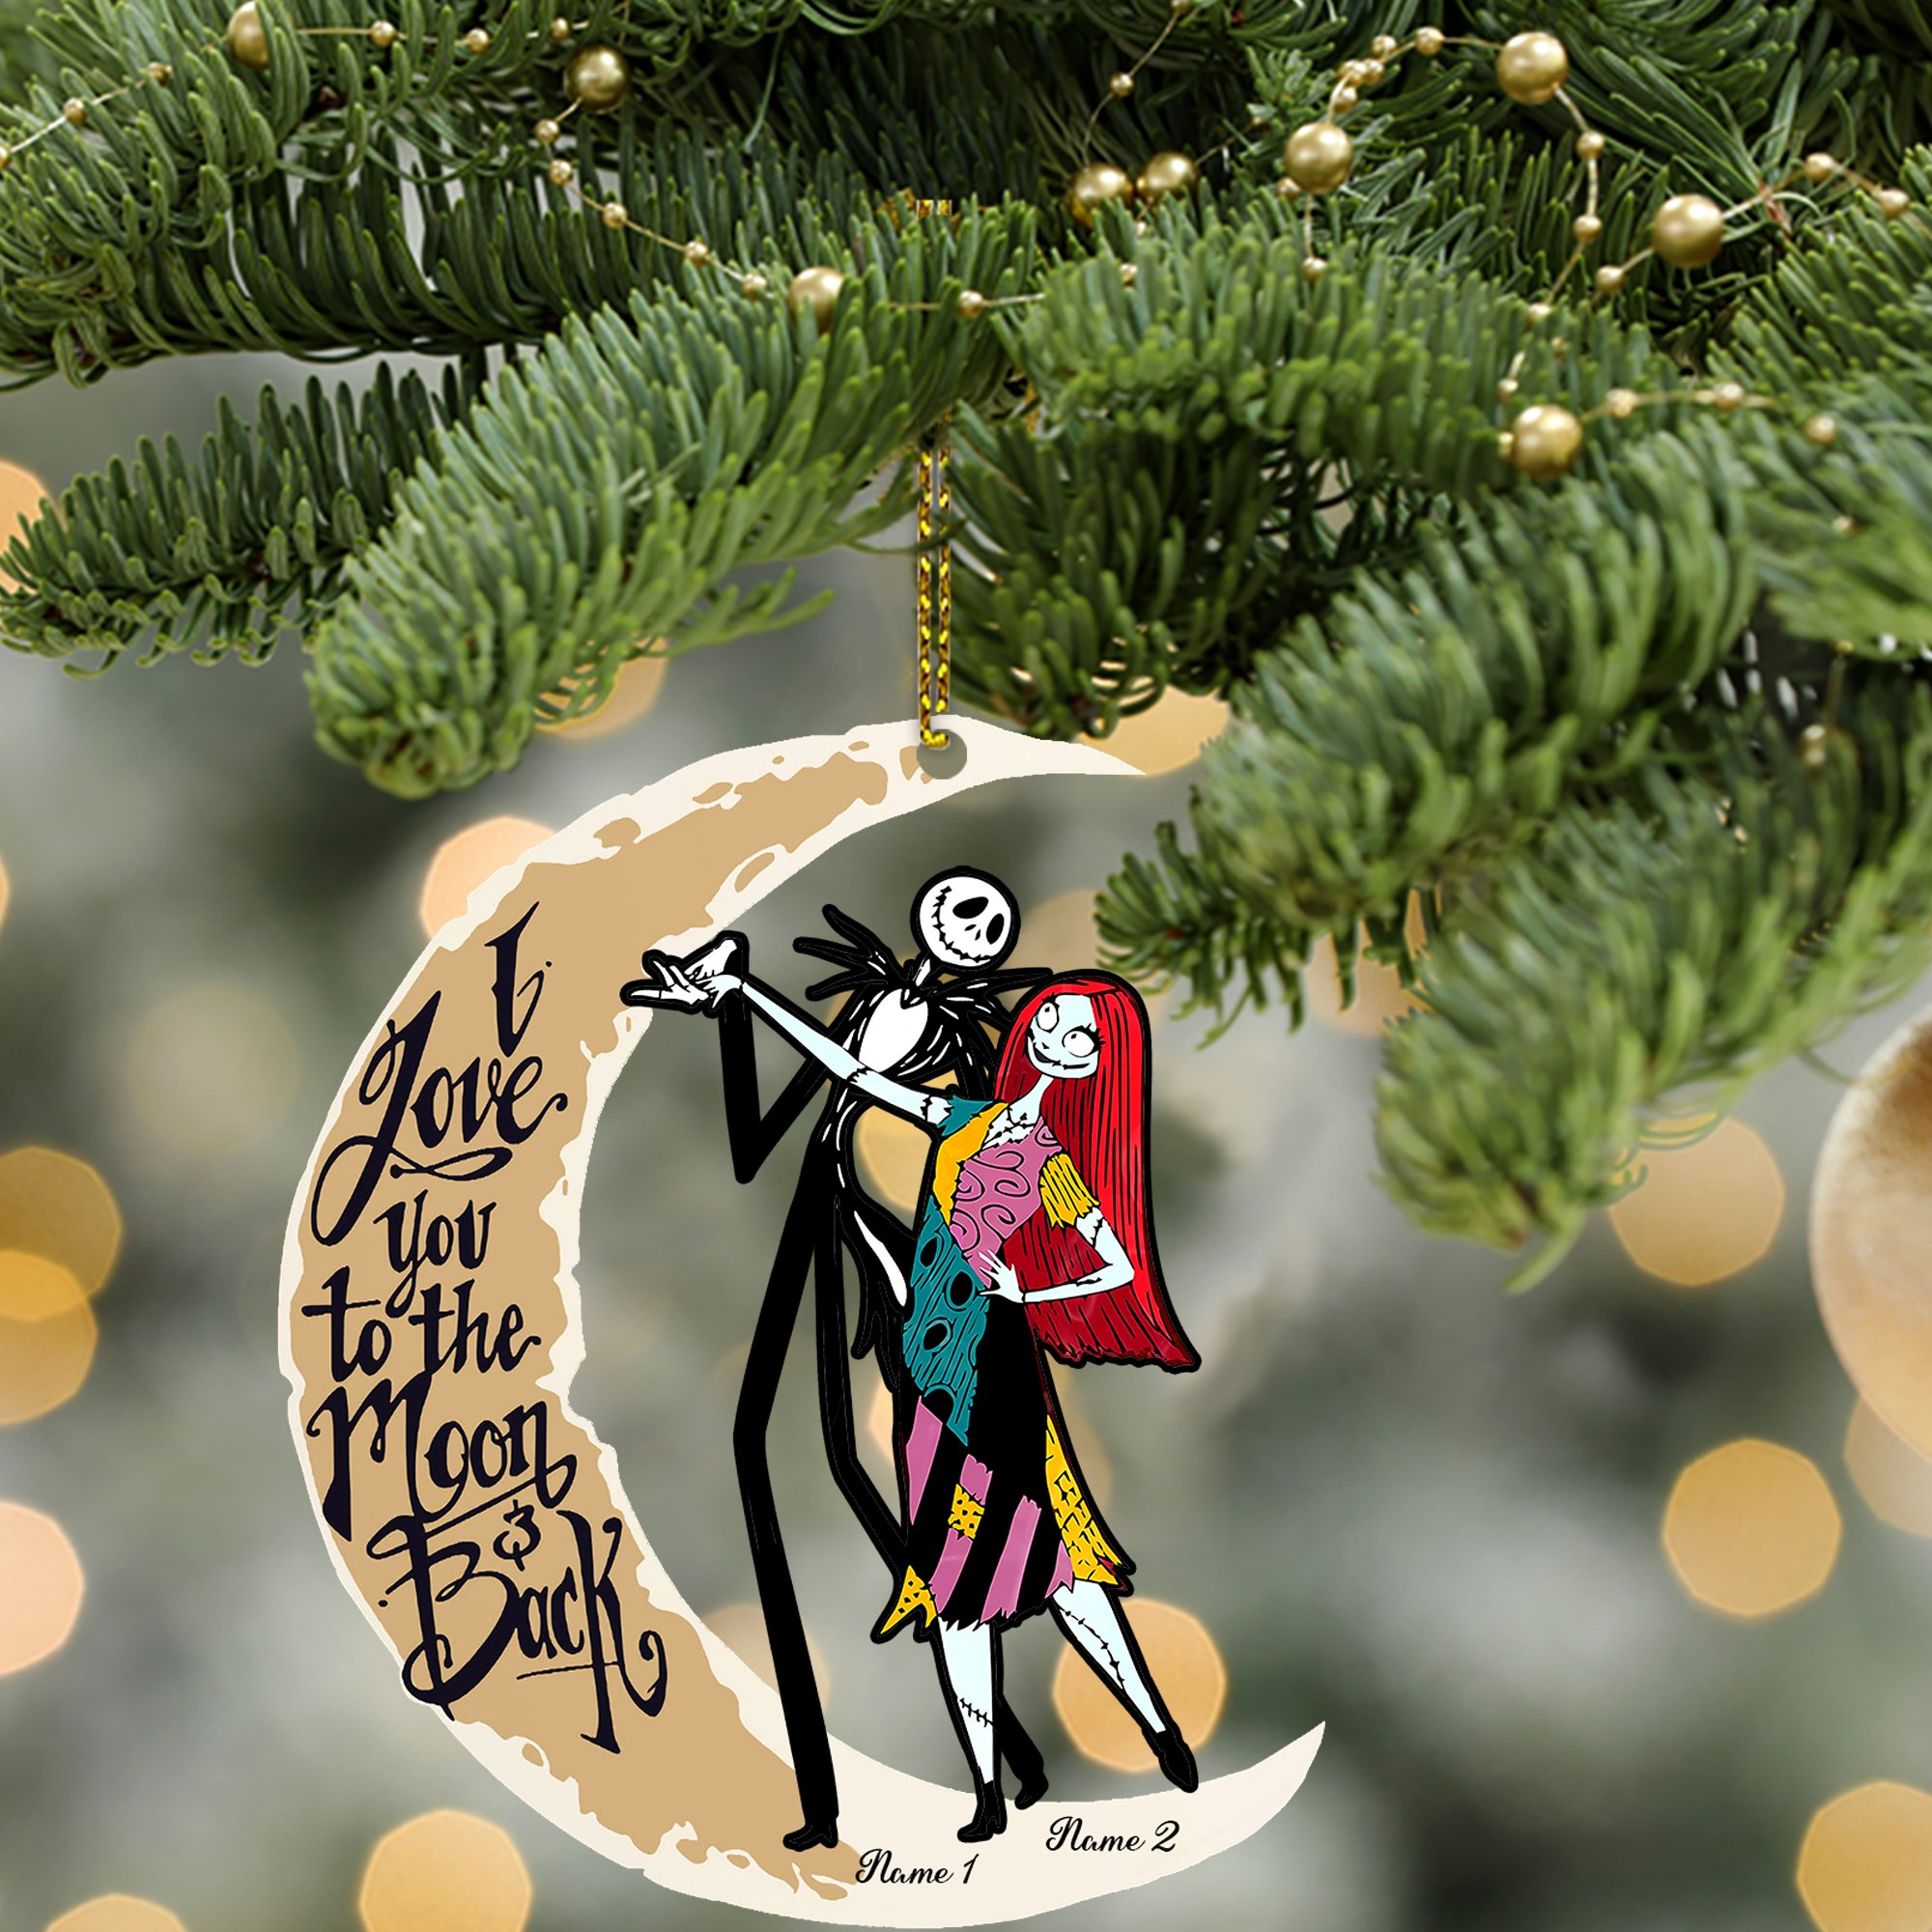 Jack skellington Sally moon I Love You To The Moon And Back custom personalized ornament 2